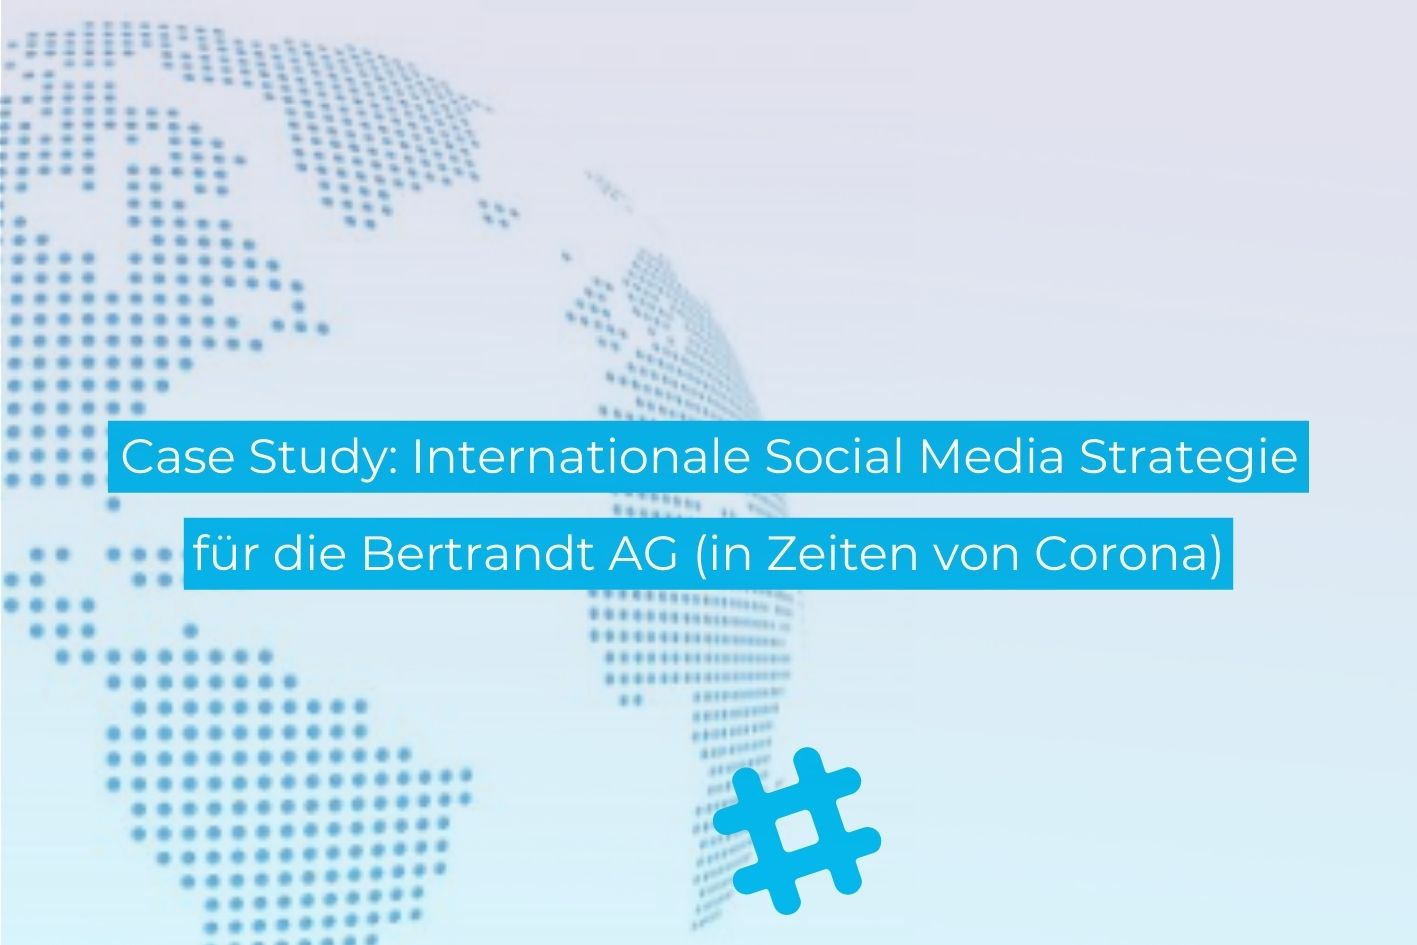 Internationale Social Media Strategie für die Bertrandt AG: Mit Empowerment zum Social Media Playbook (in Zeiten von Corona)